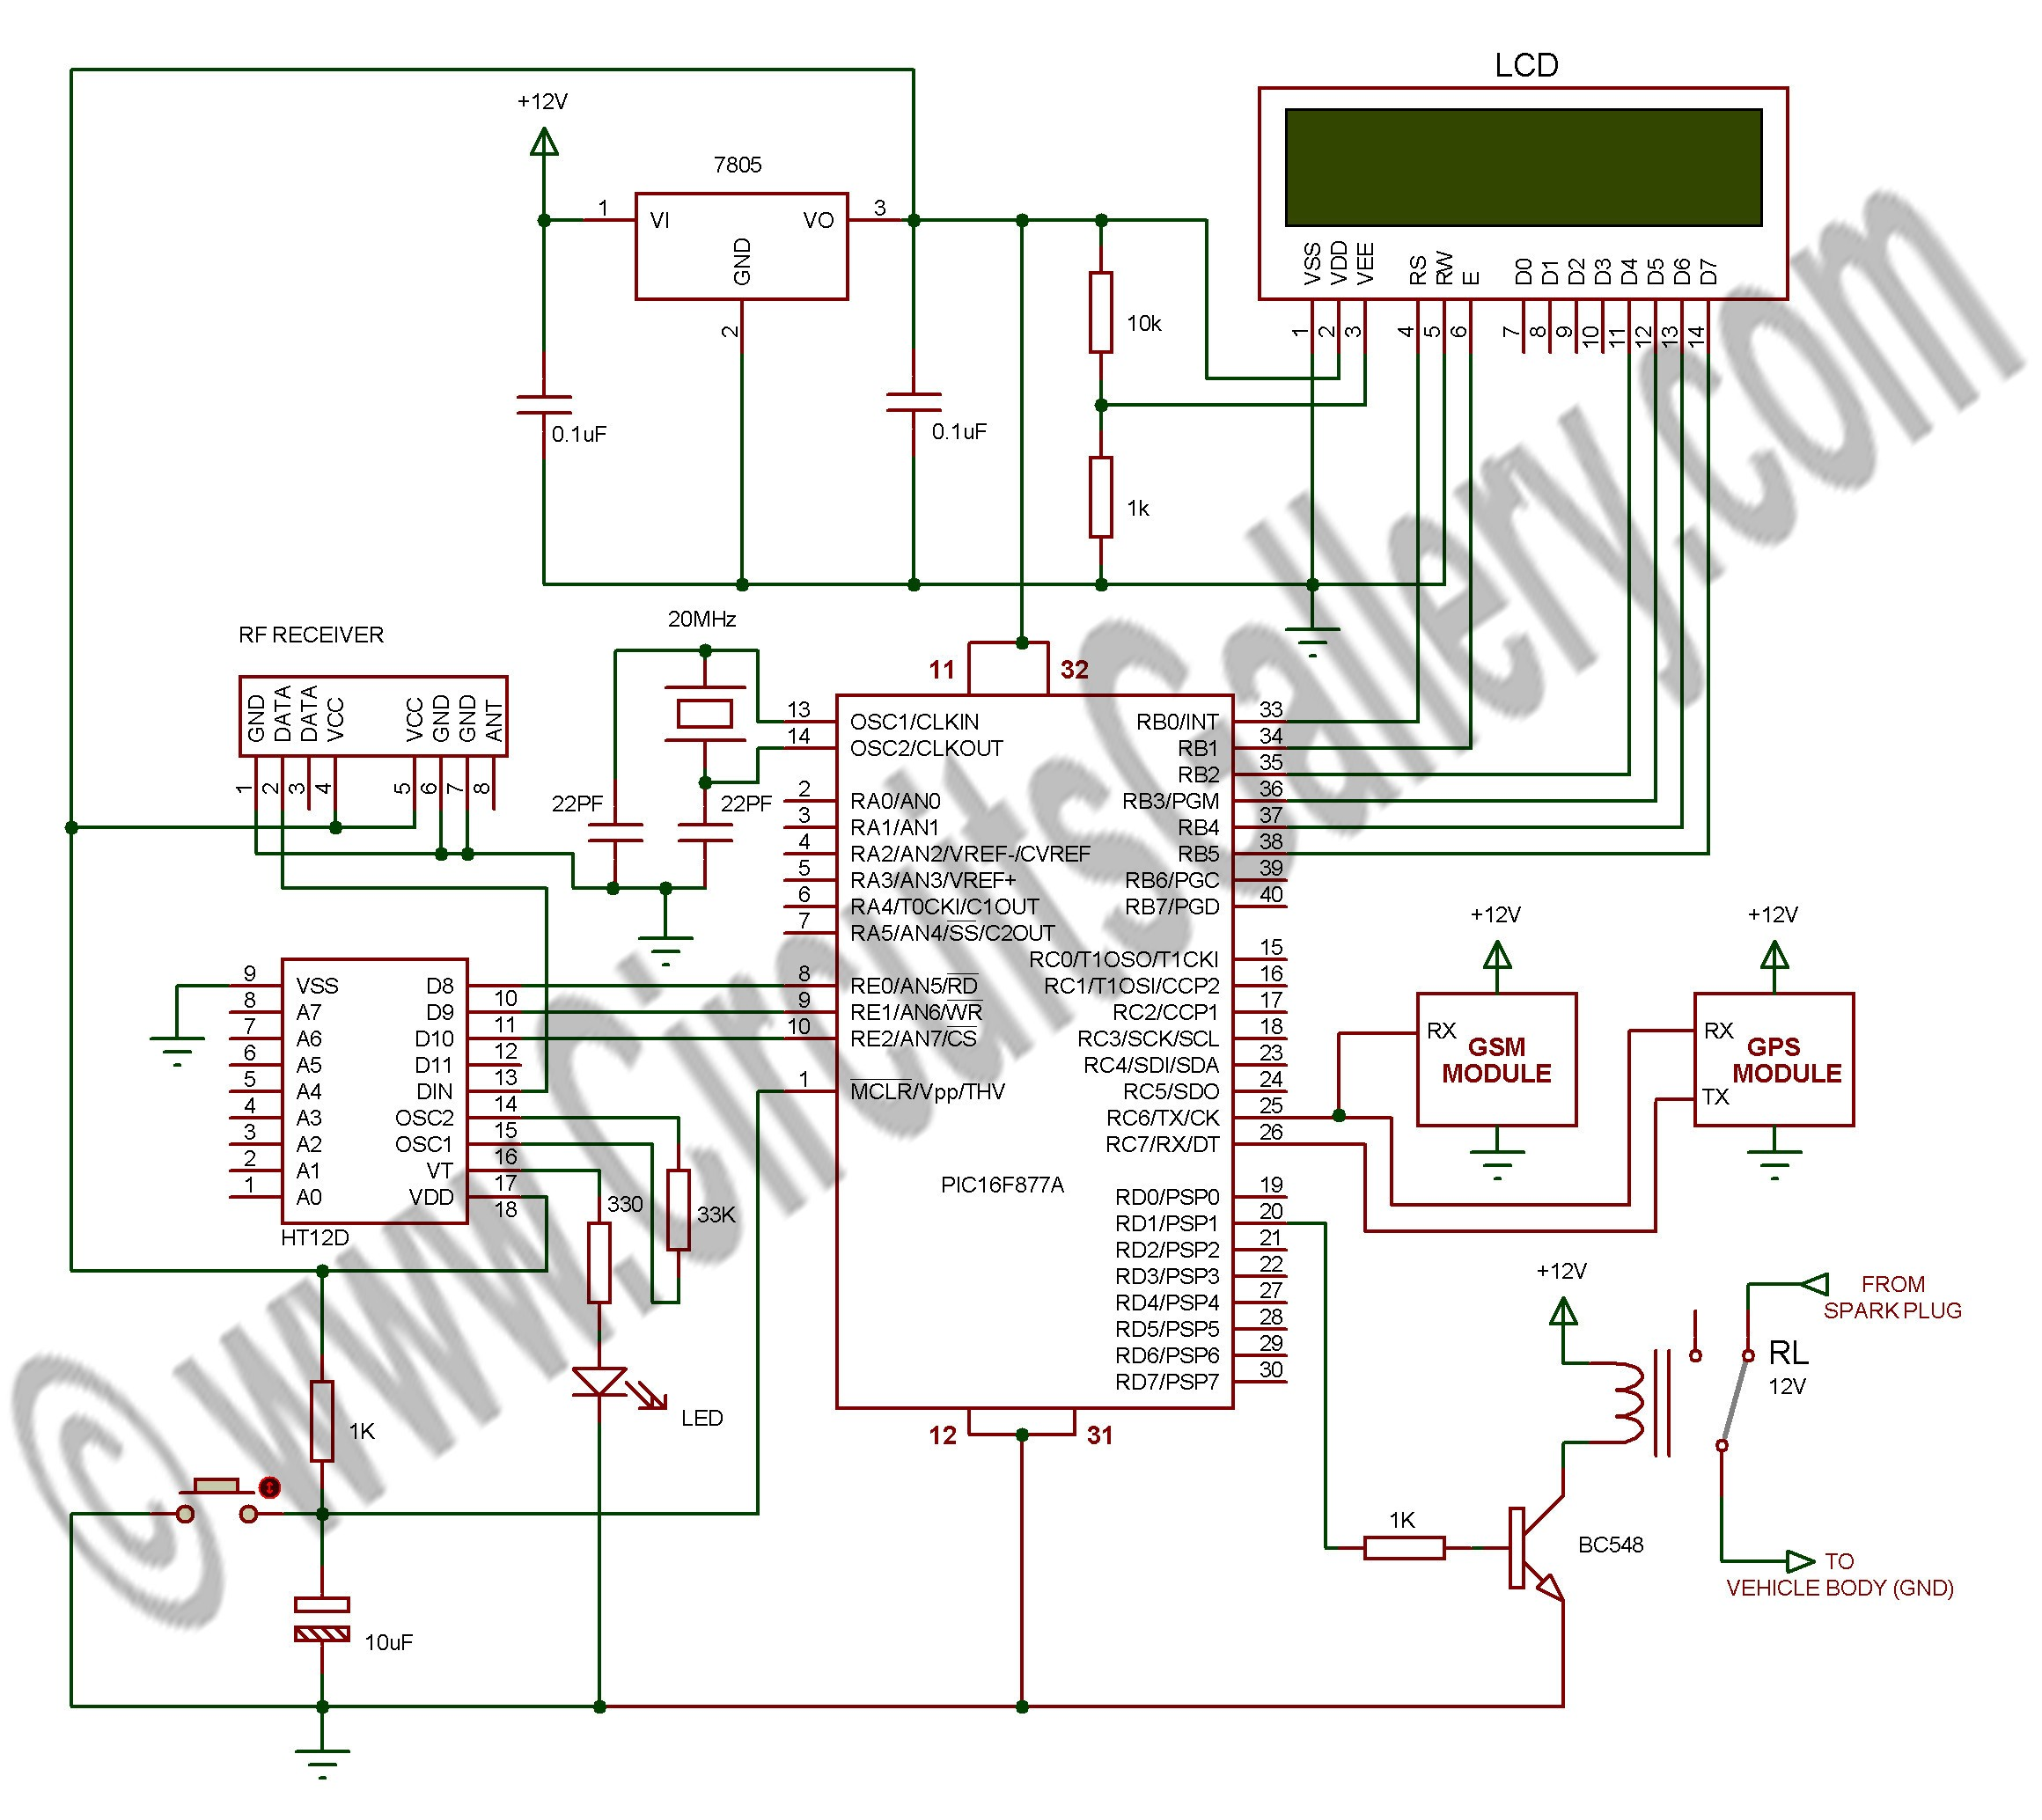 400 Watt Metal Halide Wiring Diagram Schematic Library Of Wiring Universal Ballast  Wiring Diagrams 240v Ballast Wiring Diagram